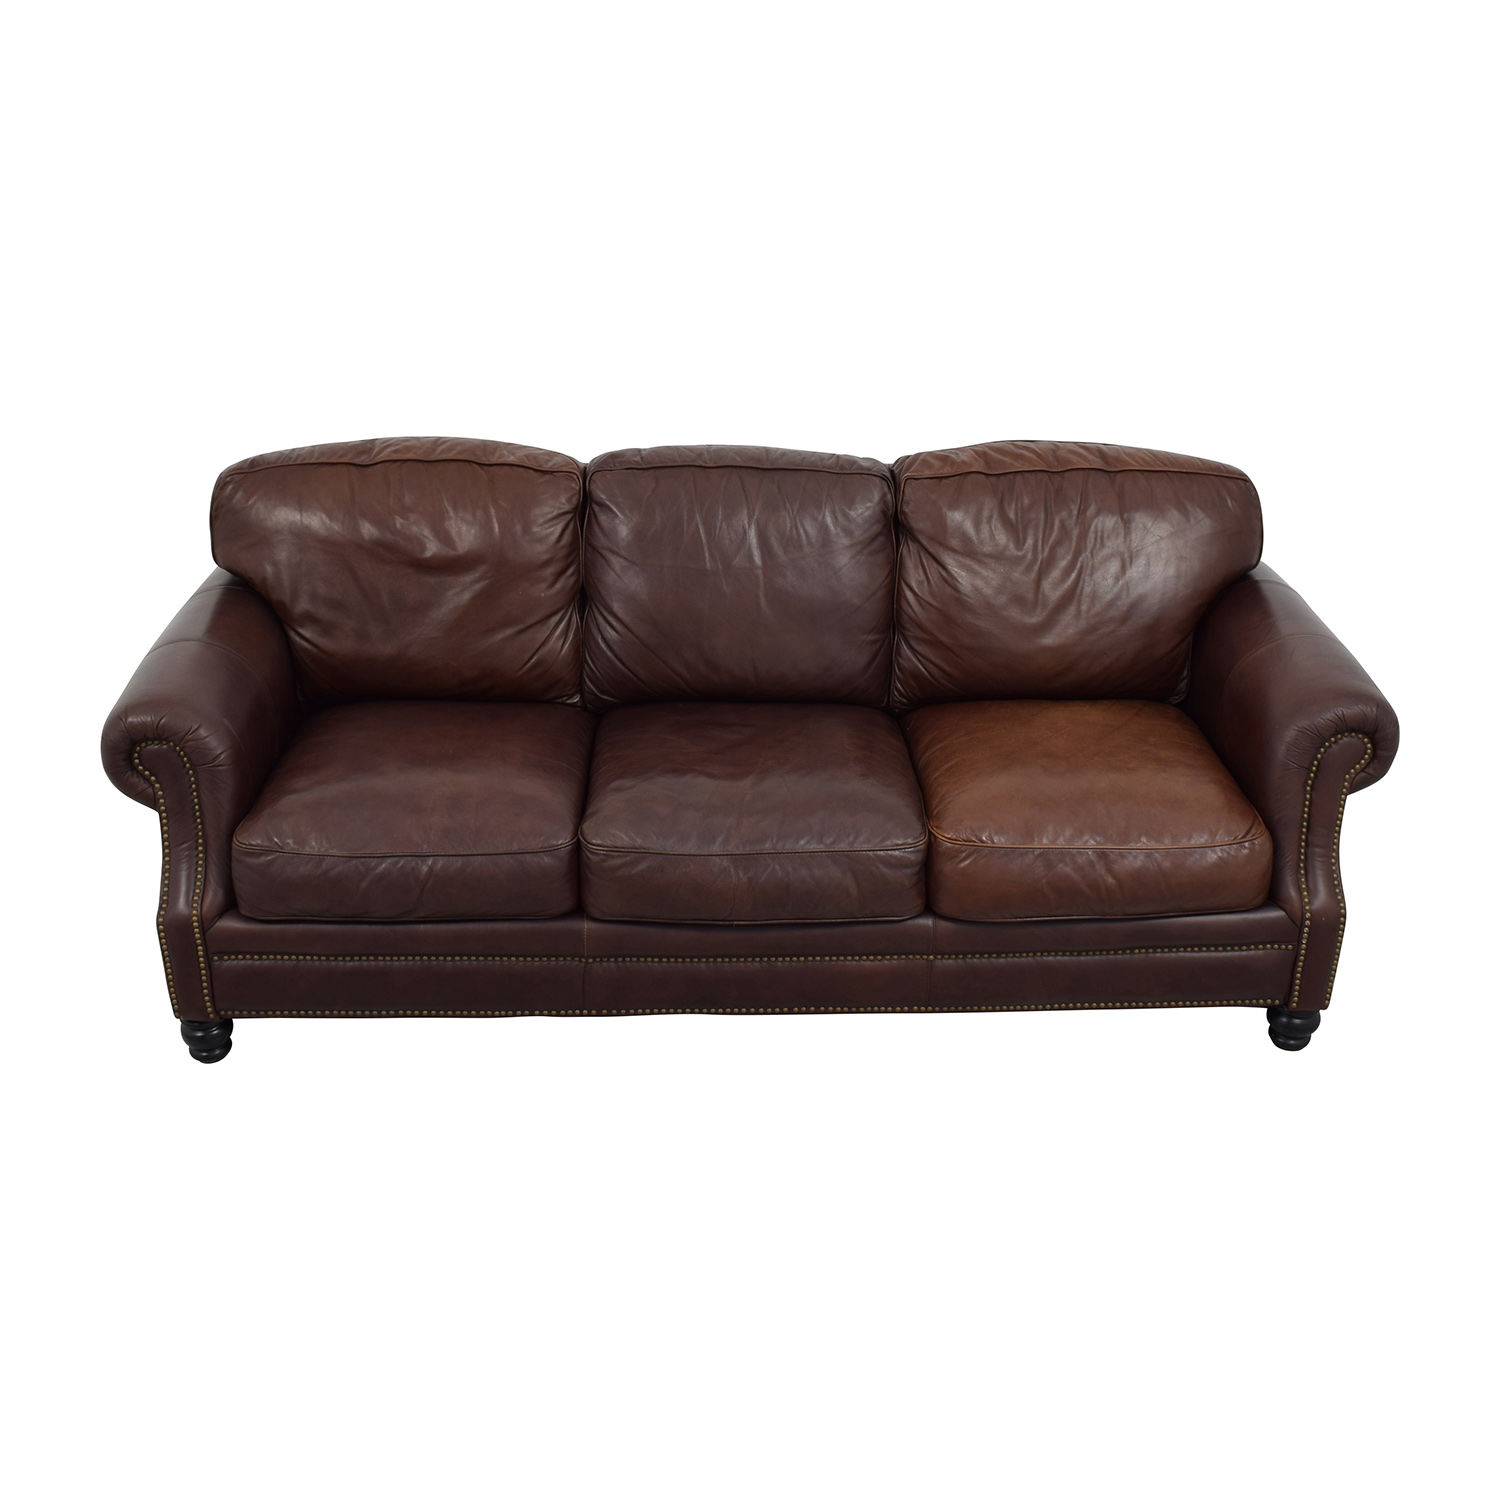 Leather studded sofa leather studded sofa black i m in for Studded leather sofa